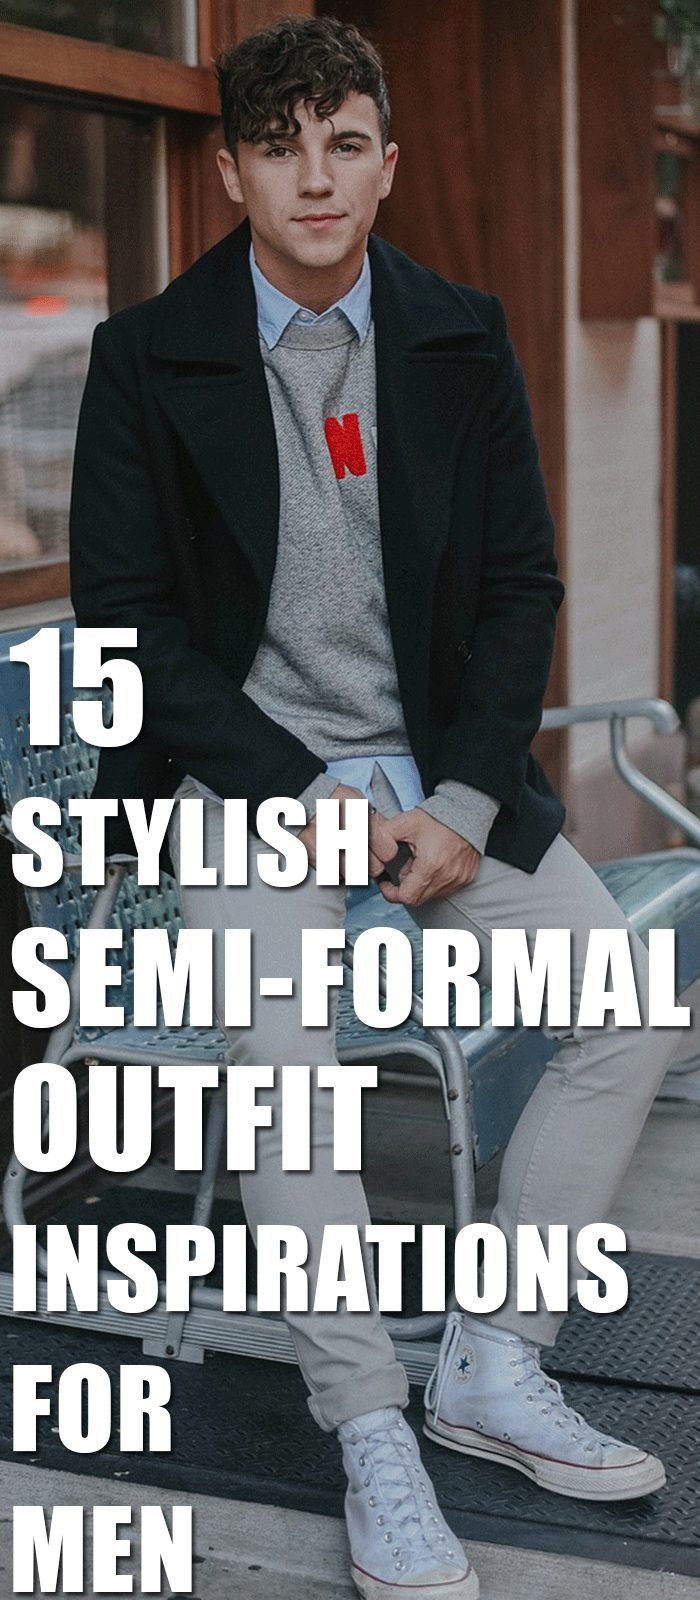 15 Stylish Semi-Formal Outfit Inspirations For Men